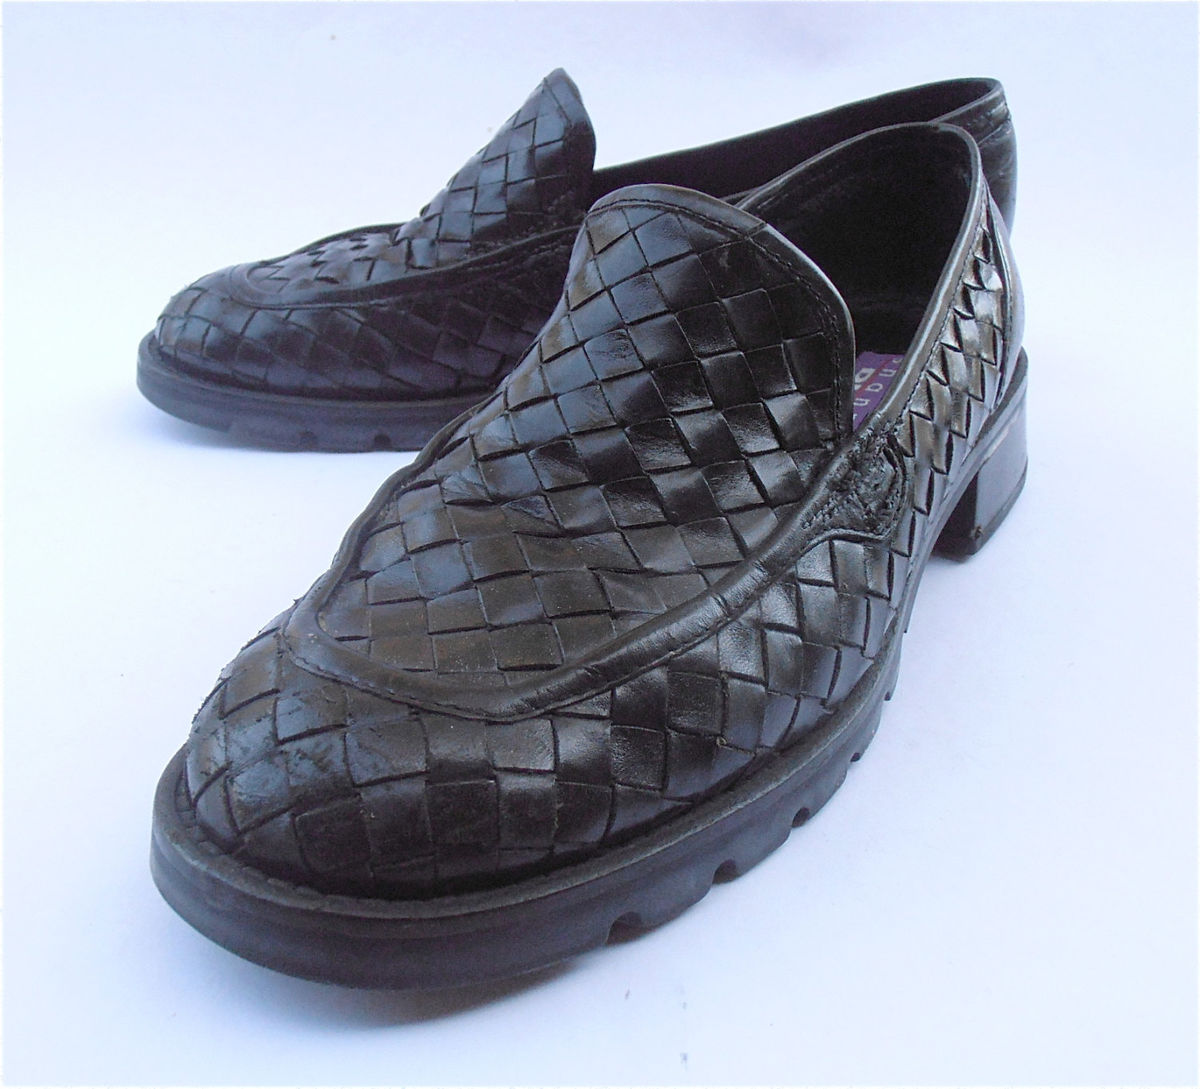 Vintage Weave Black Shoes Black Woven Leather Shoes Black Loafers Black Flat Shoes Black Weave Leather Loafers Shannon Diego Ladies Size 7.5 - product images  of